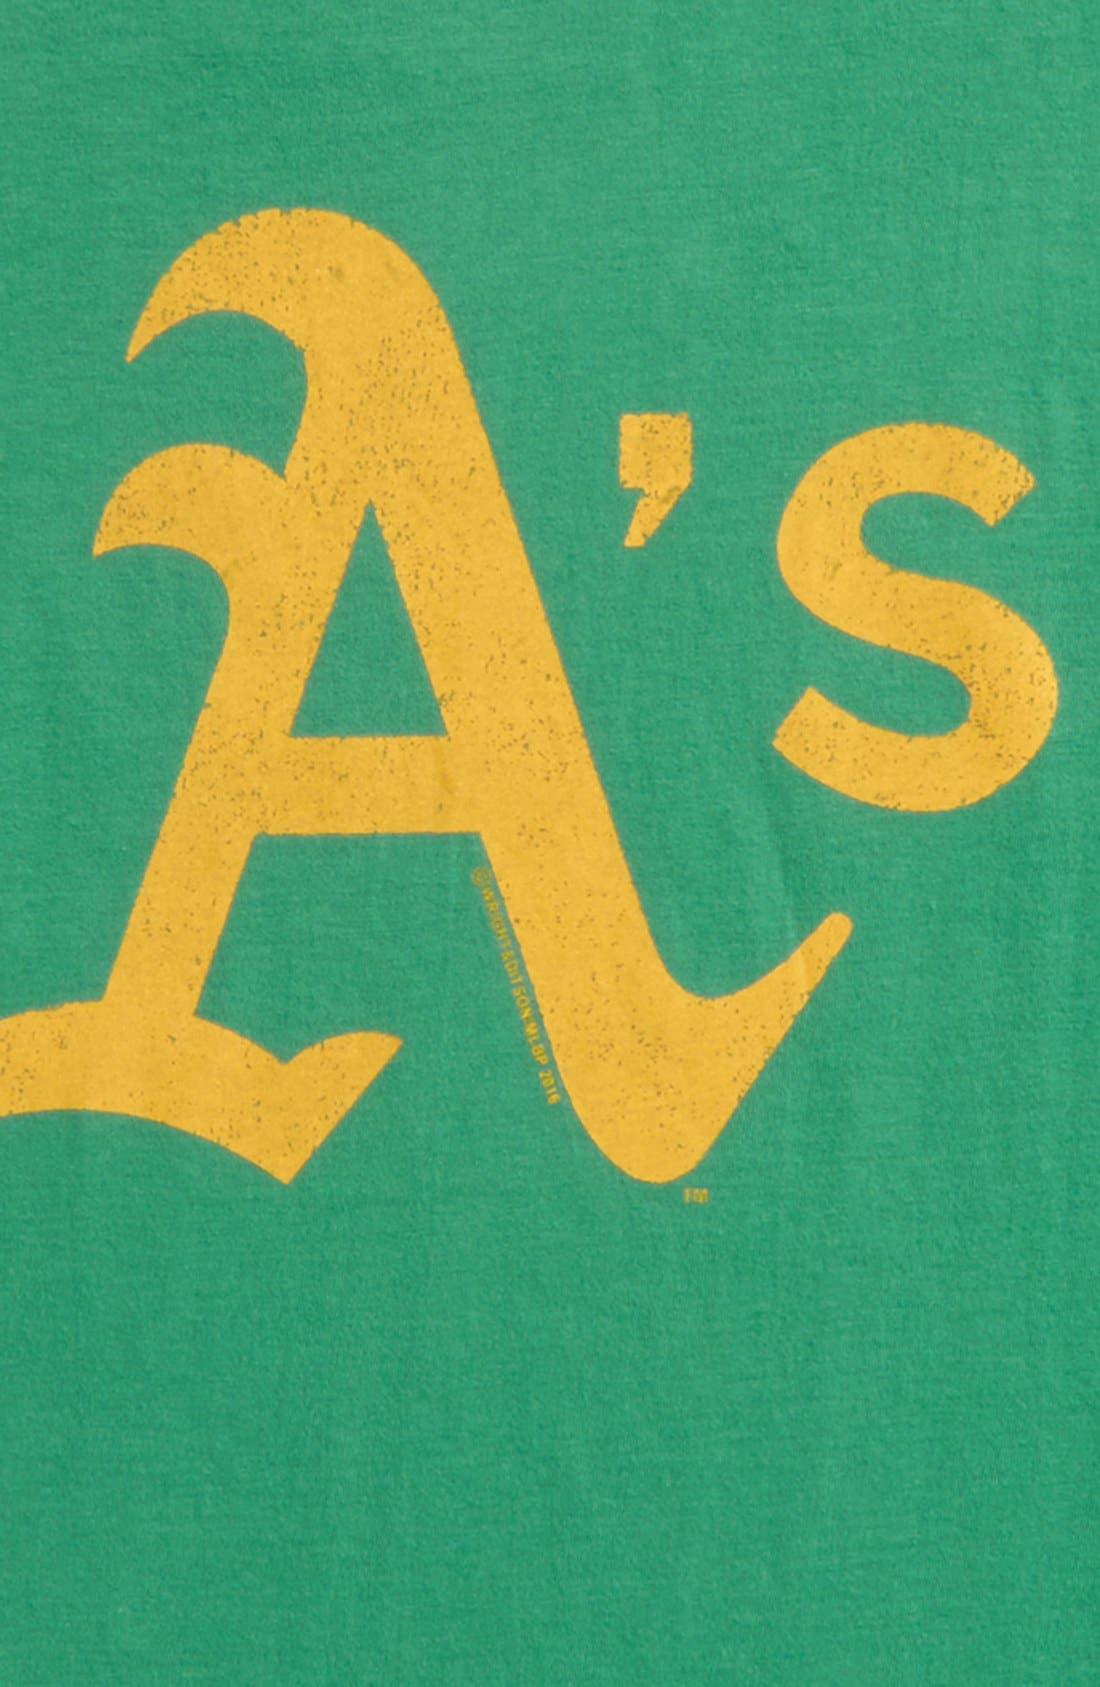 'Oakland Athletics' T-Shirt,                             Alternate thumbnail 2, color,                             Green